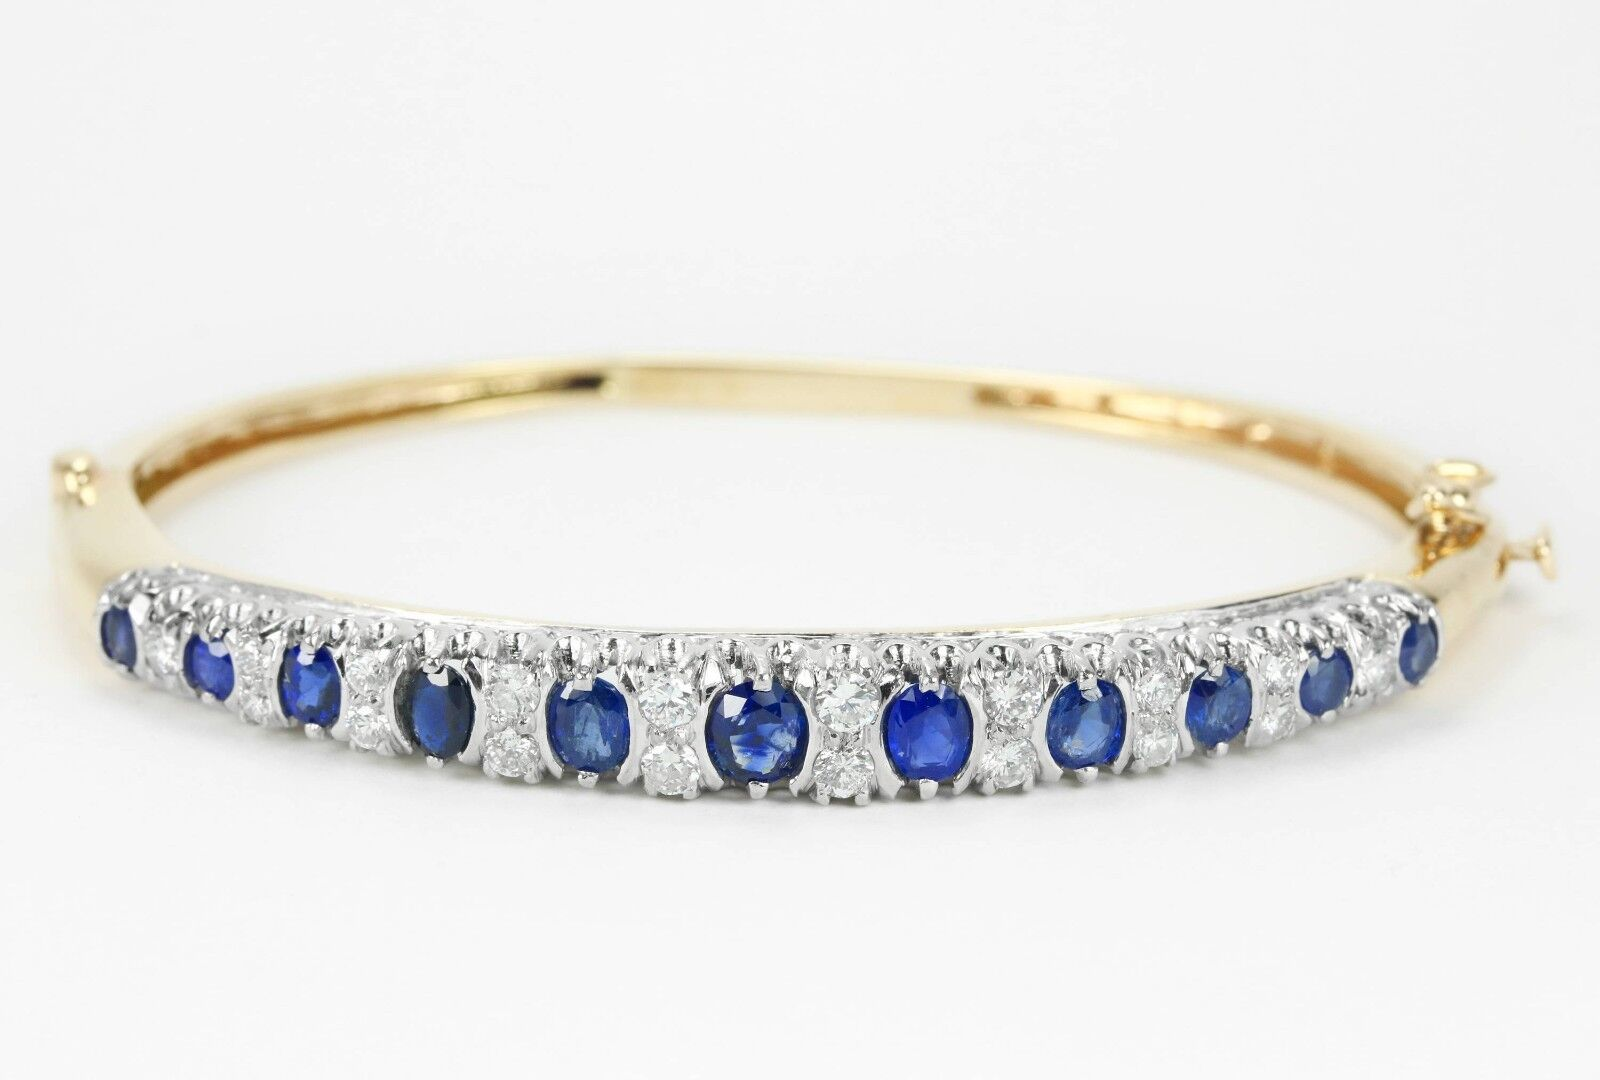 bracelet diamond bangles paste bbangle sapphire bangle boylerpf edwardian products victorian baste and